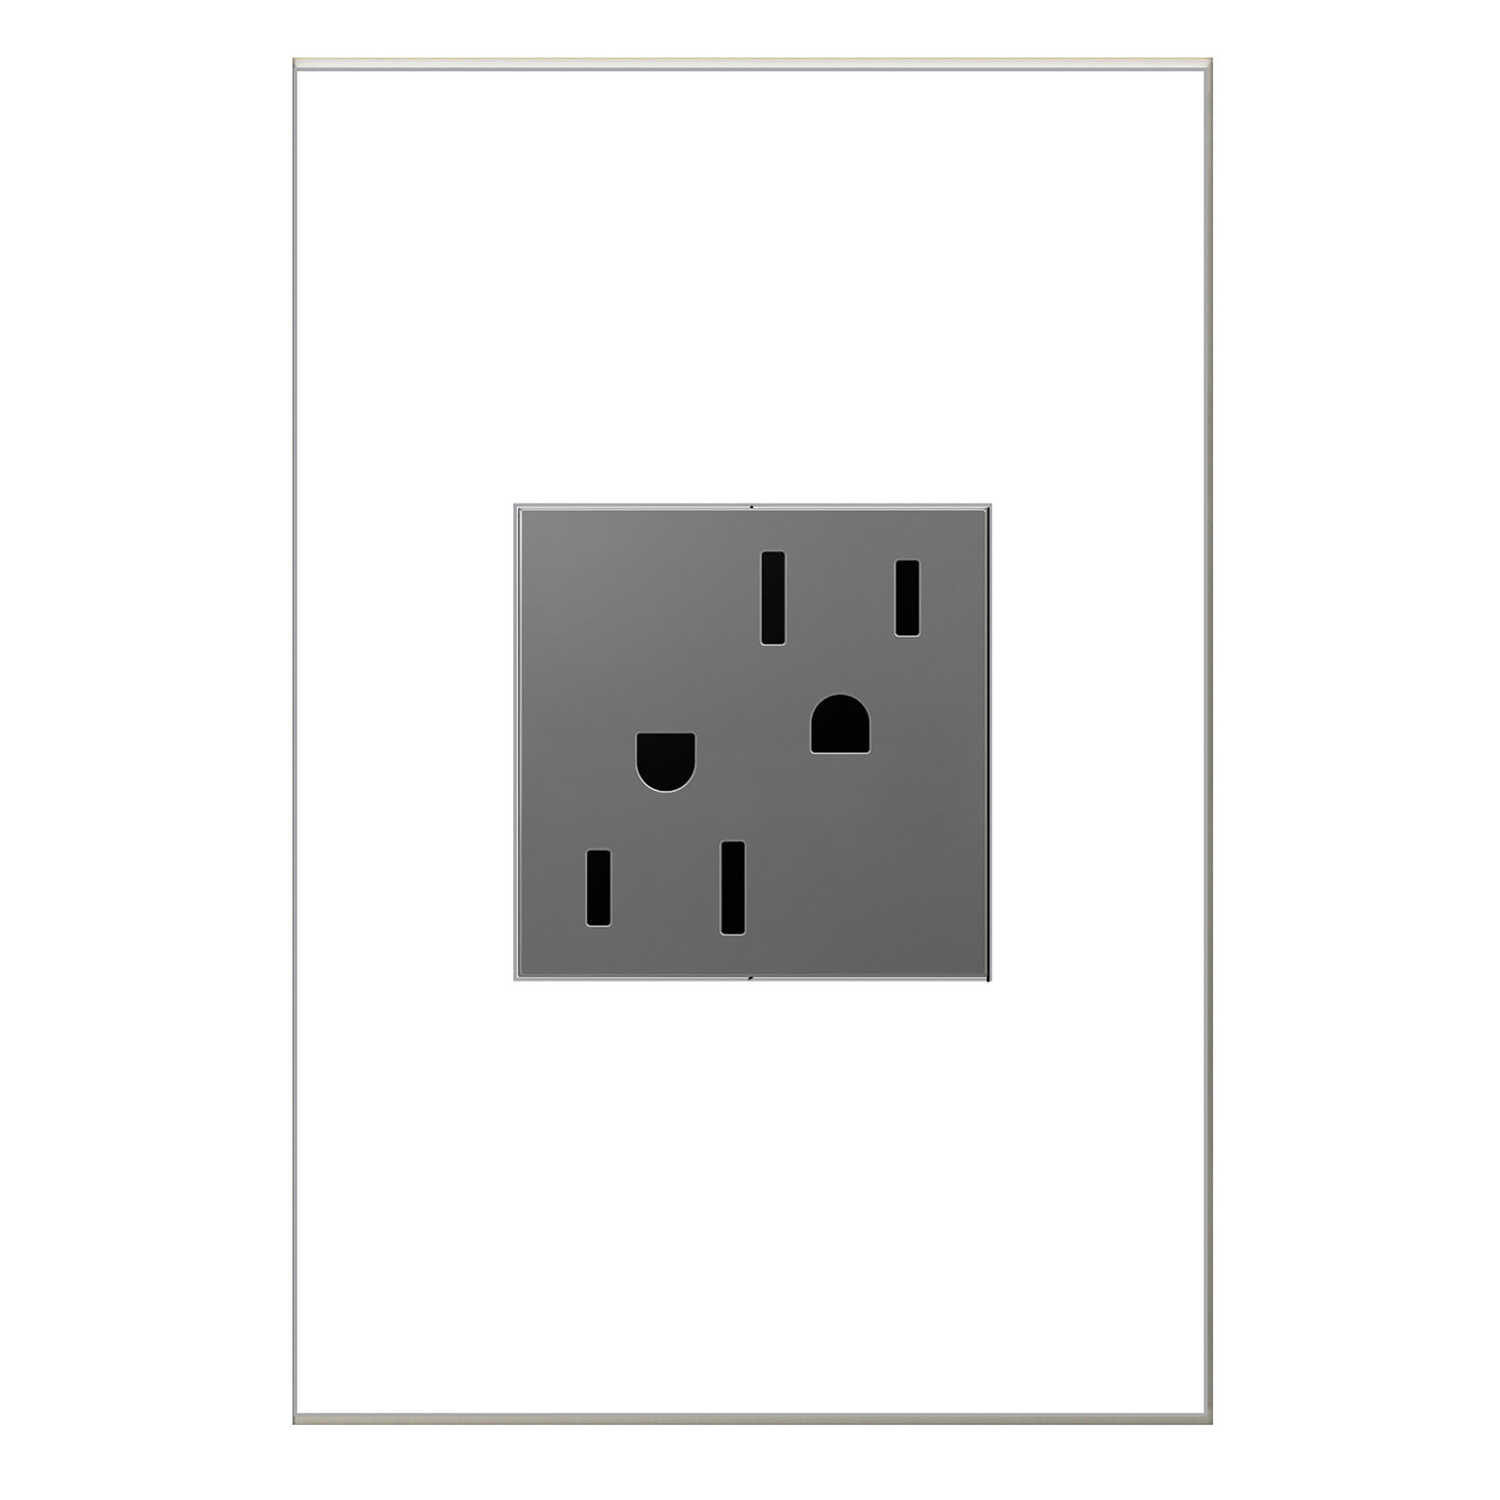 Legrand  Adorne  15 amps 125 volts Silver  Outlet  5-15 R  1 pk